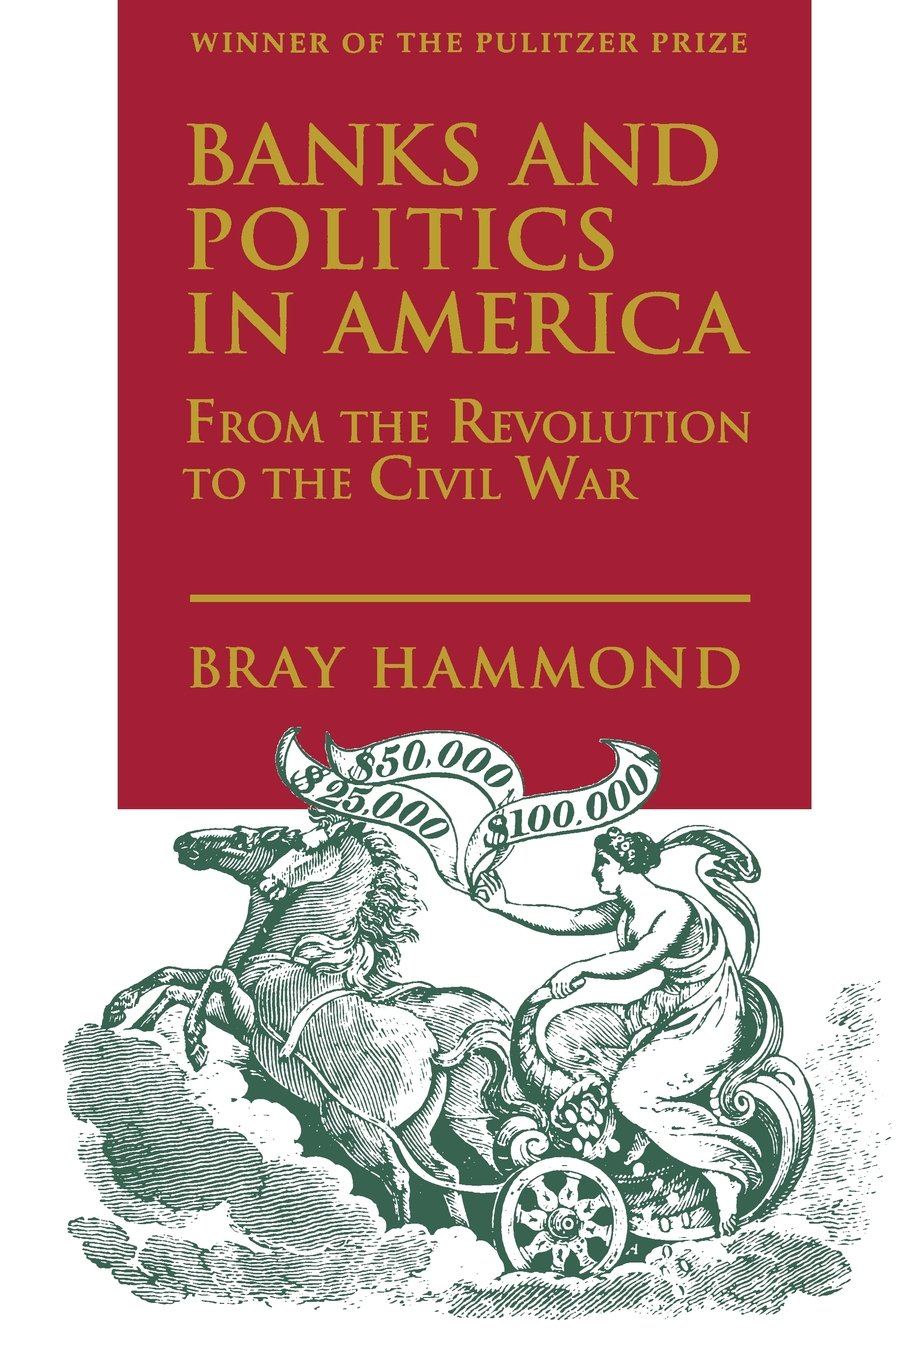 Banks and Politics in America from the Revolution to the Civil War from Princeton University Press